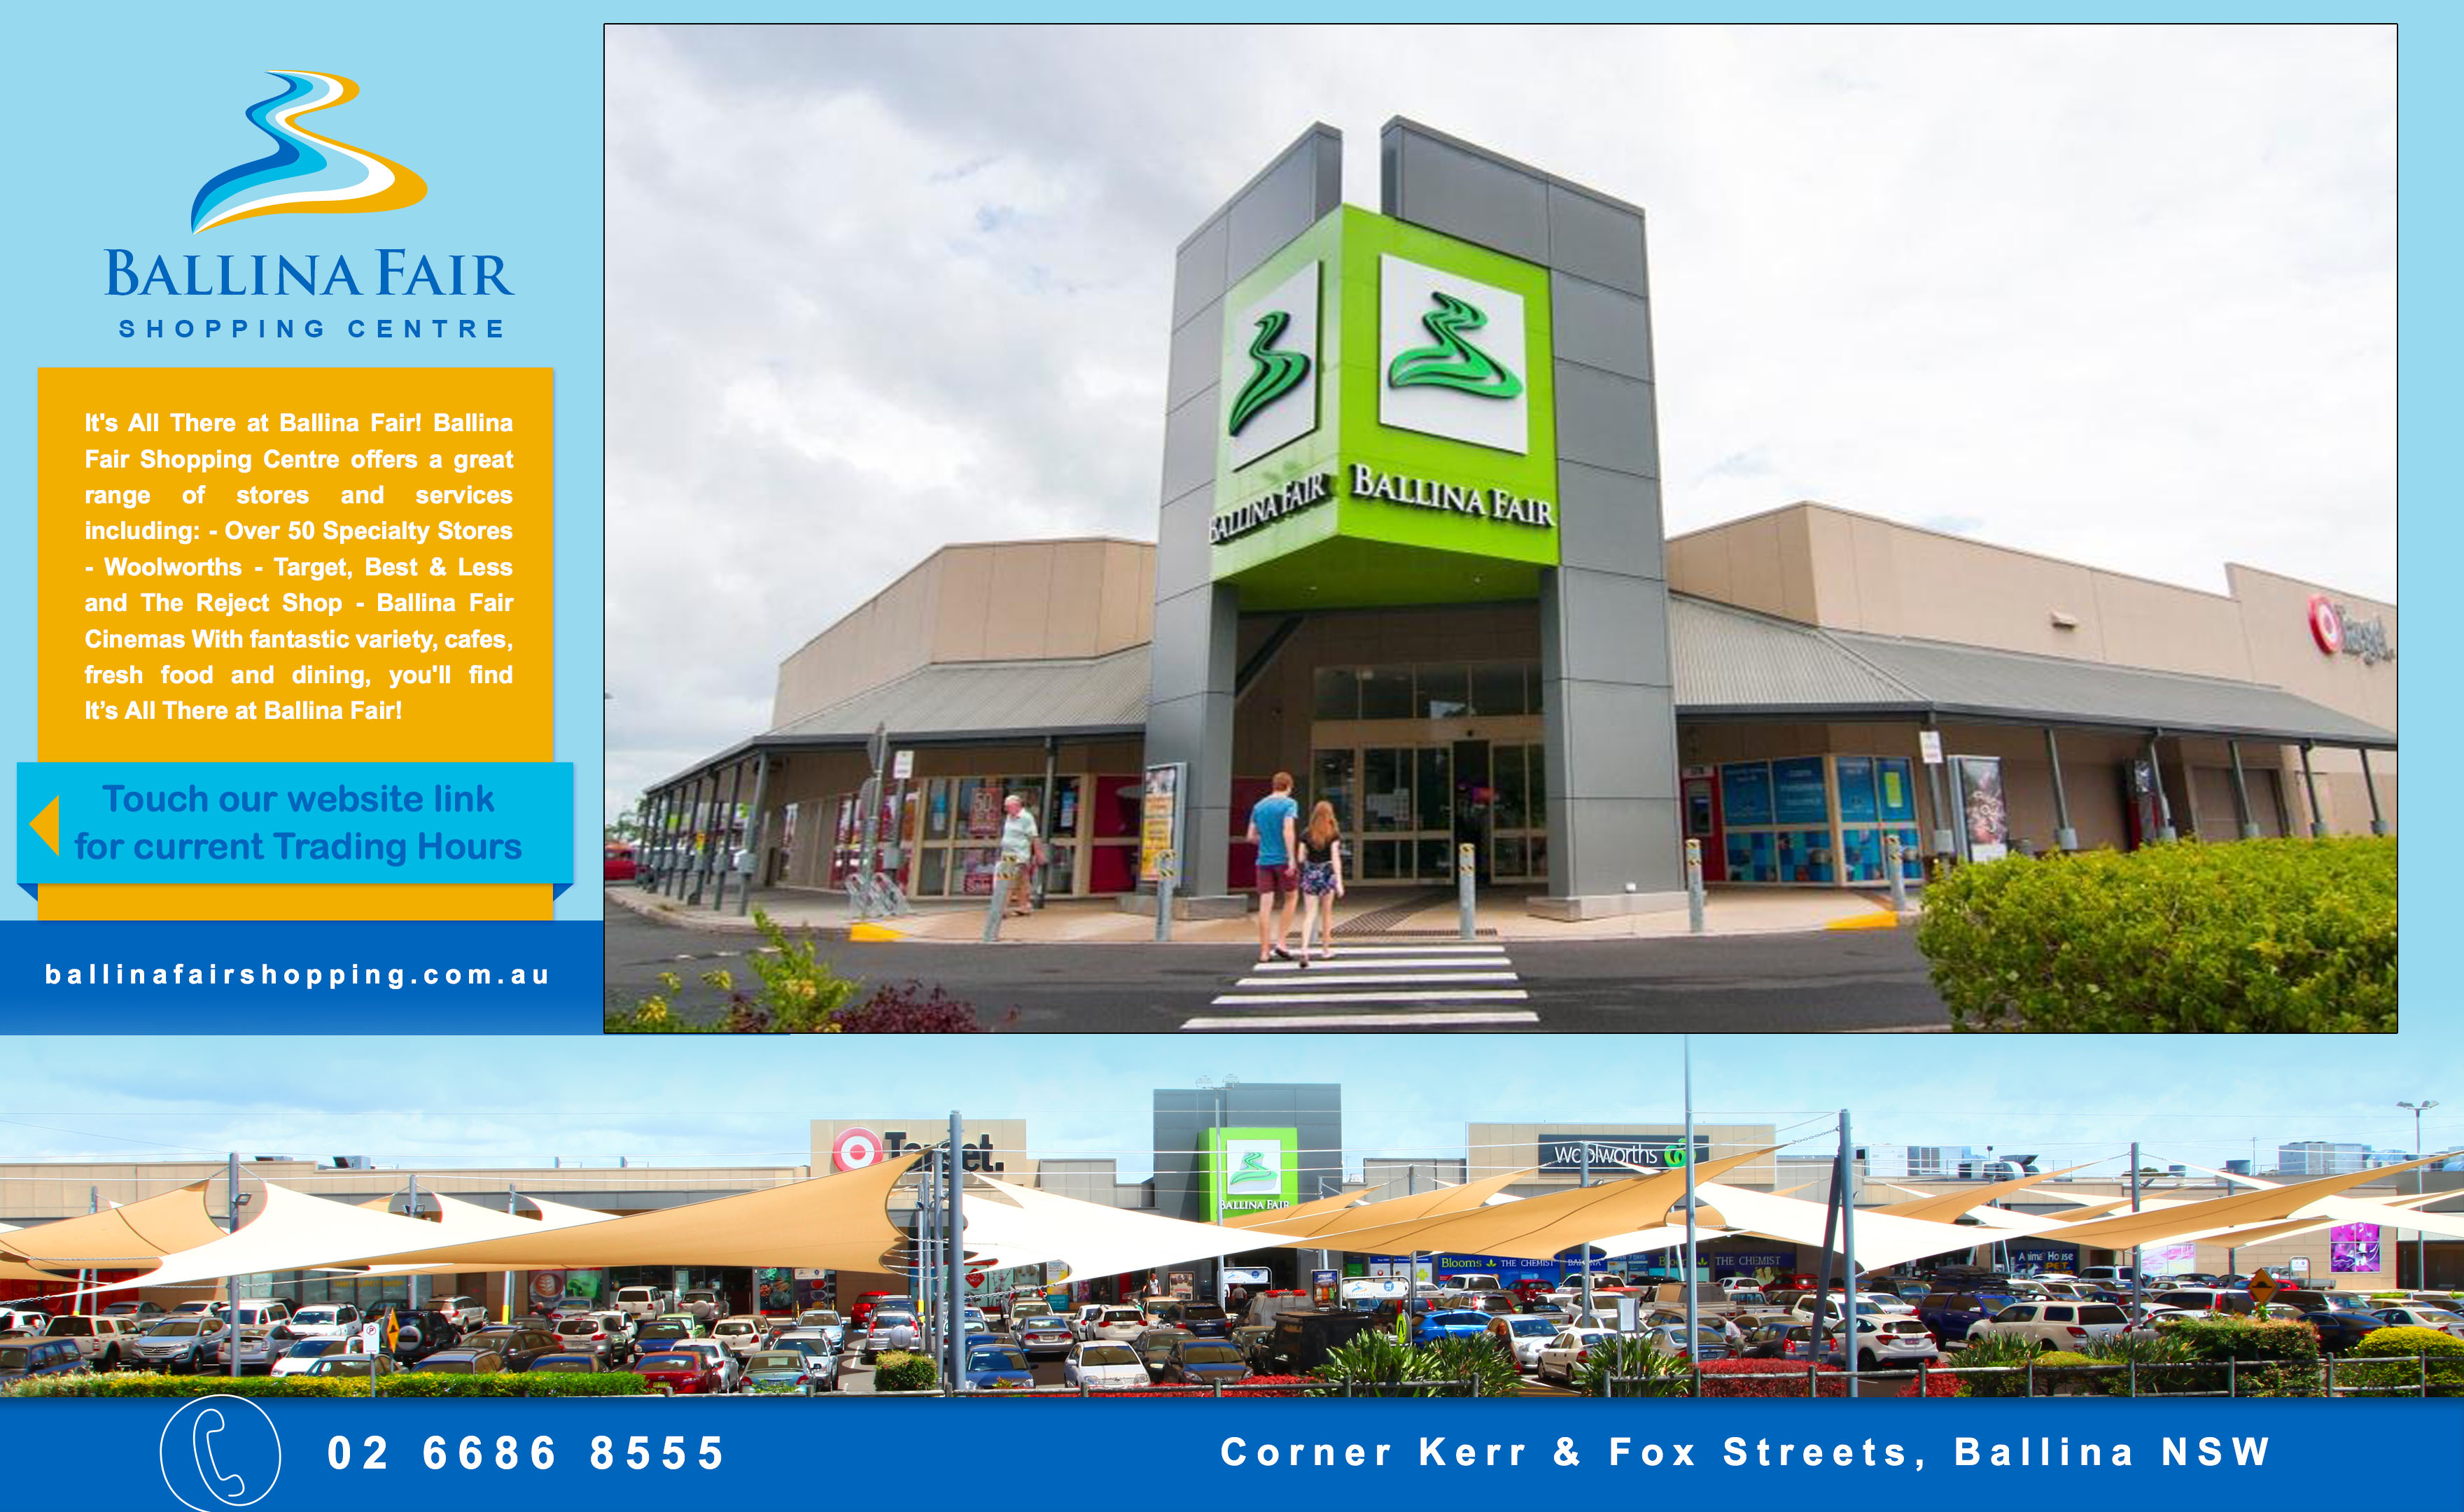 Shopping Mall Ballina Fair